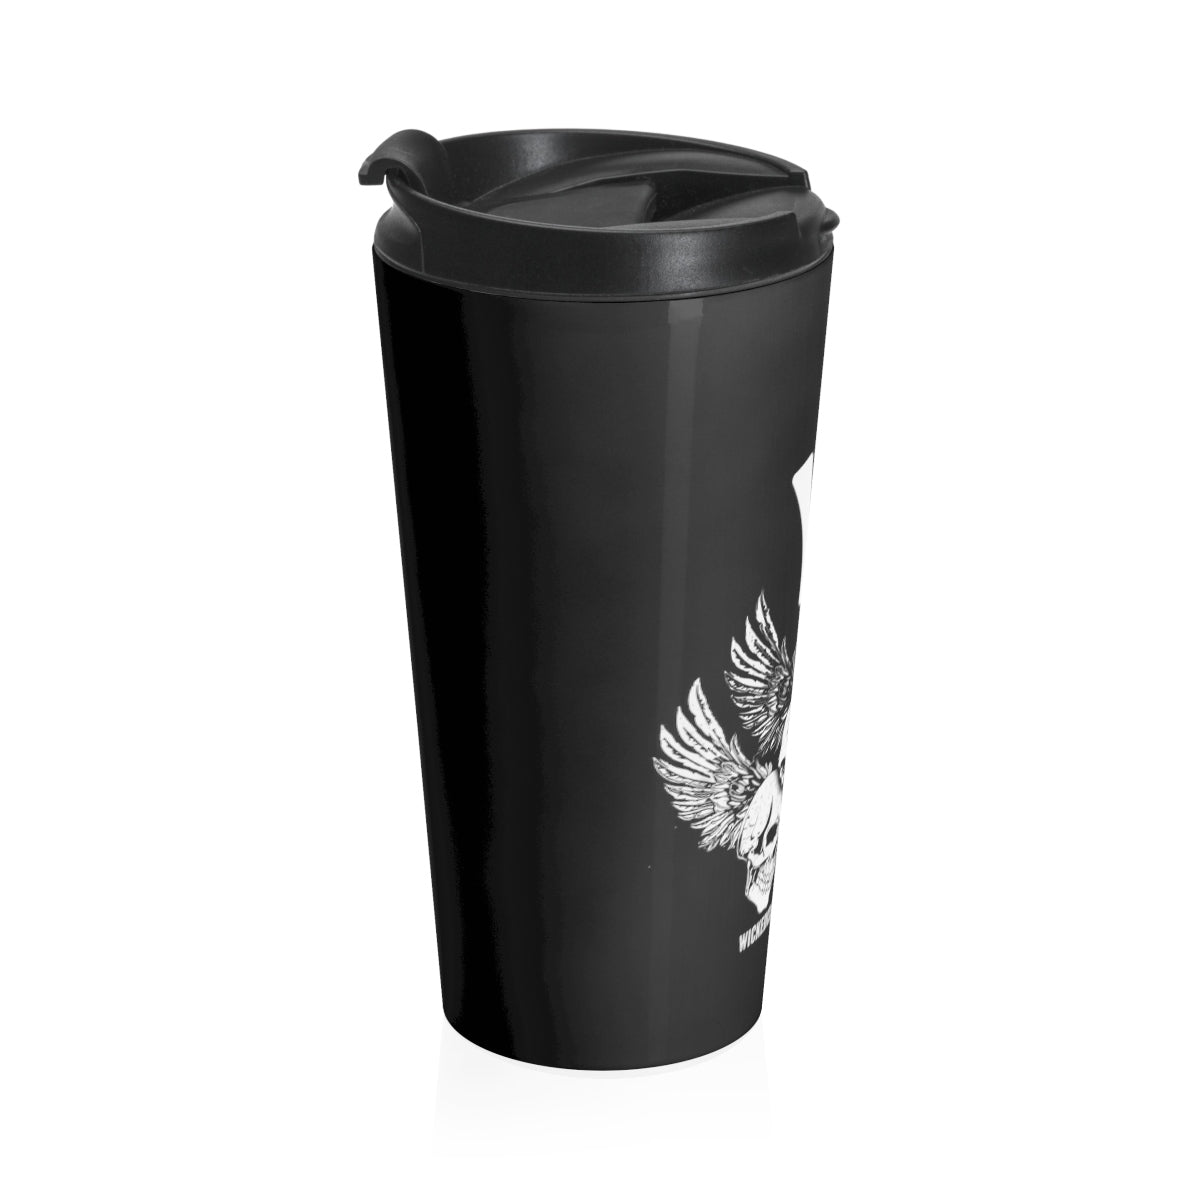 Stainless Steel Travel Mug BREAKIN DOWN THE WALLS